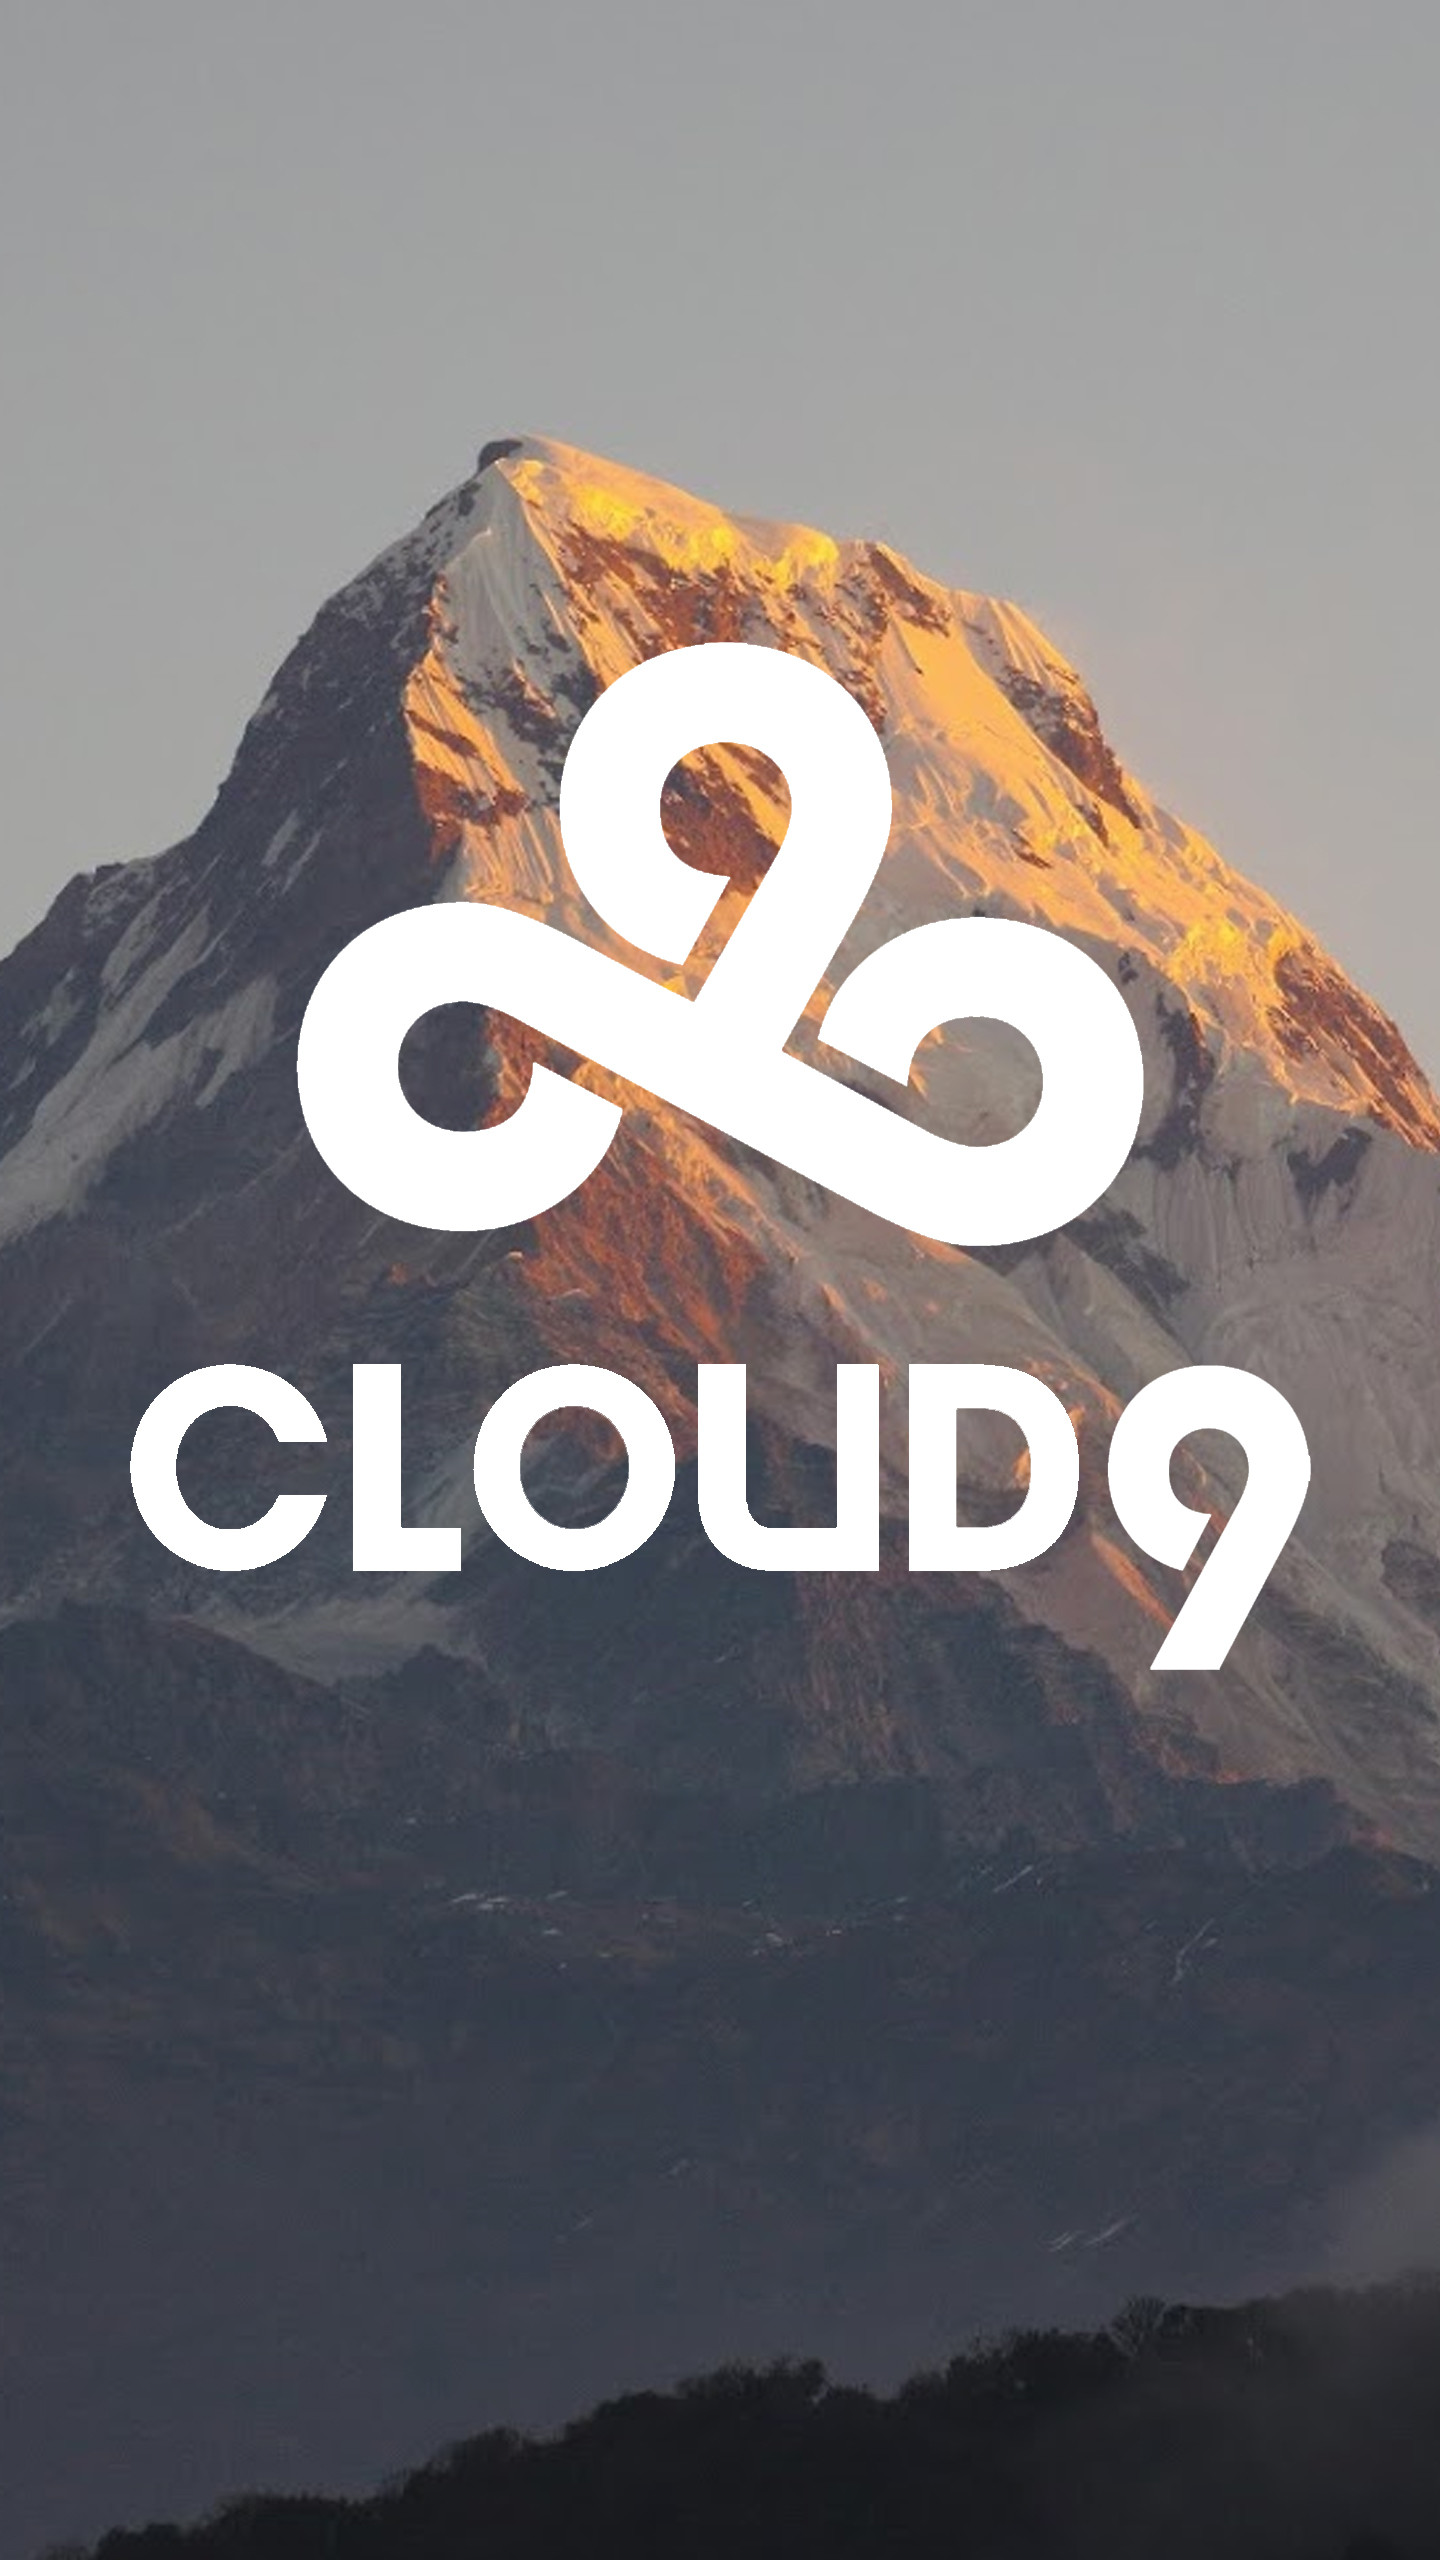 OtherCloud 9 phone background …